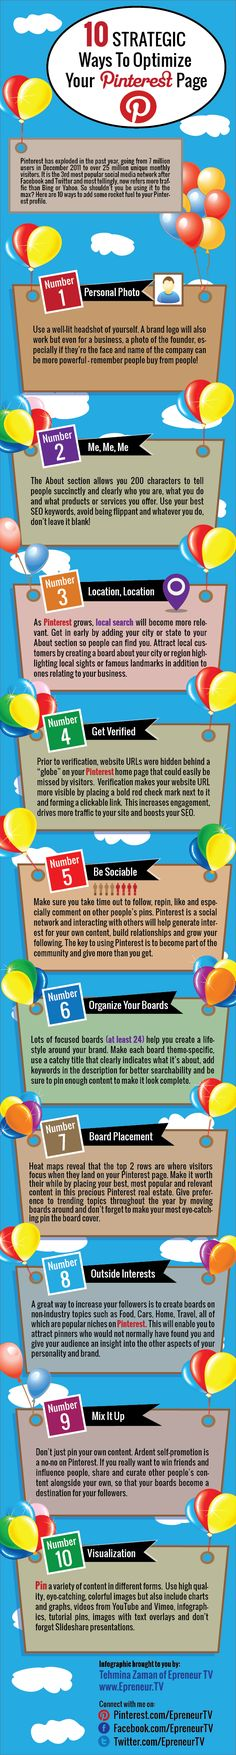 10 Strategic Ways to Optimize Your Pinterest Page [Infographic]